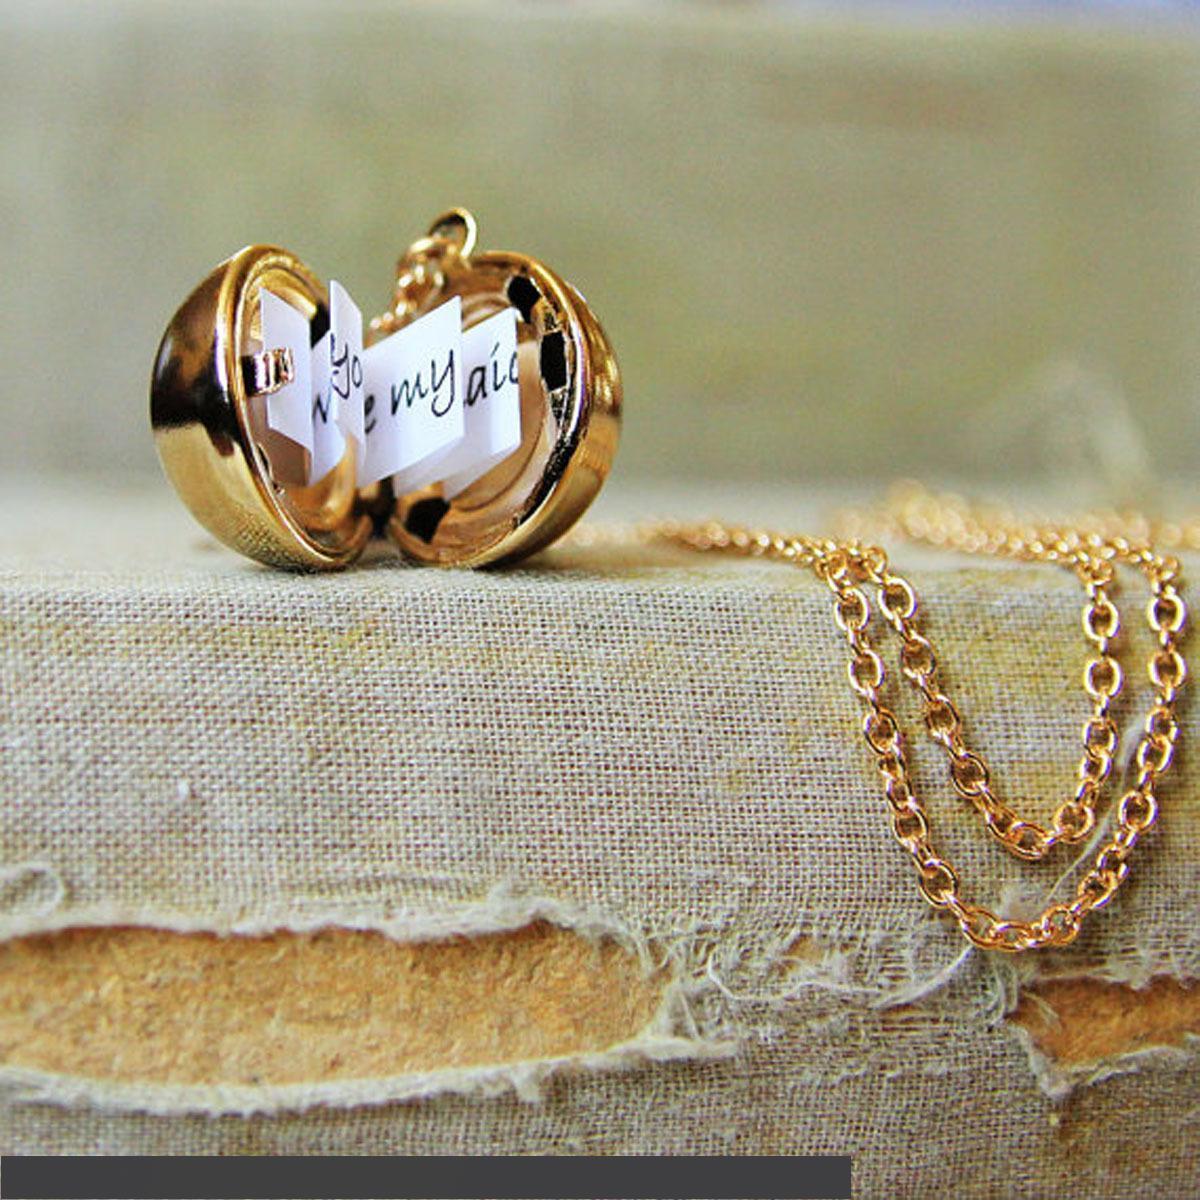 Lady Secret Message Ball Locket Silver Gold Pendant Necklace Jewelry Charm Vintage Make A Love Confession Necklace Birthday Gift